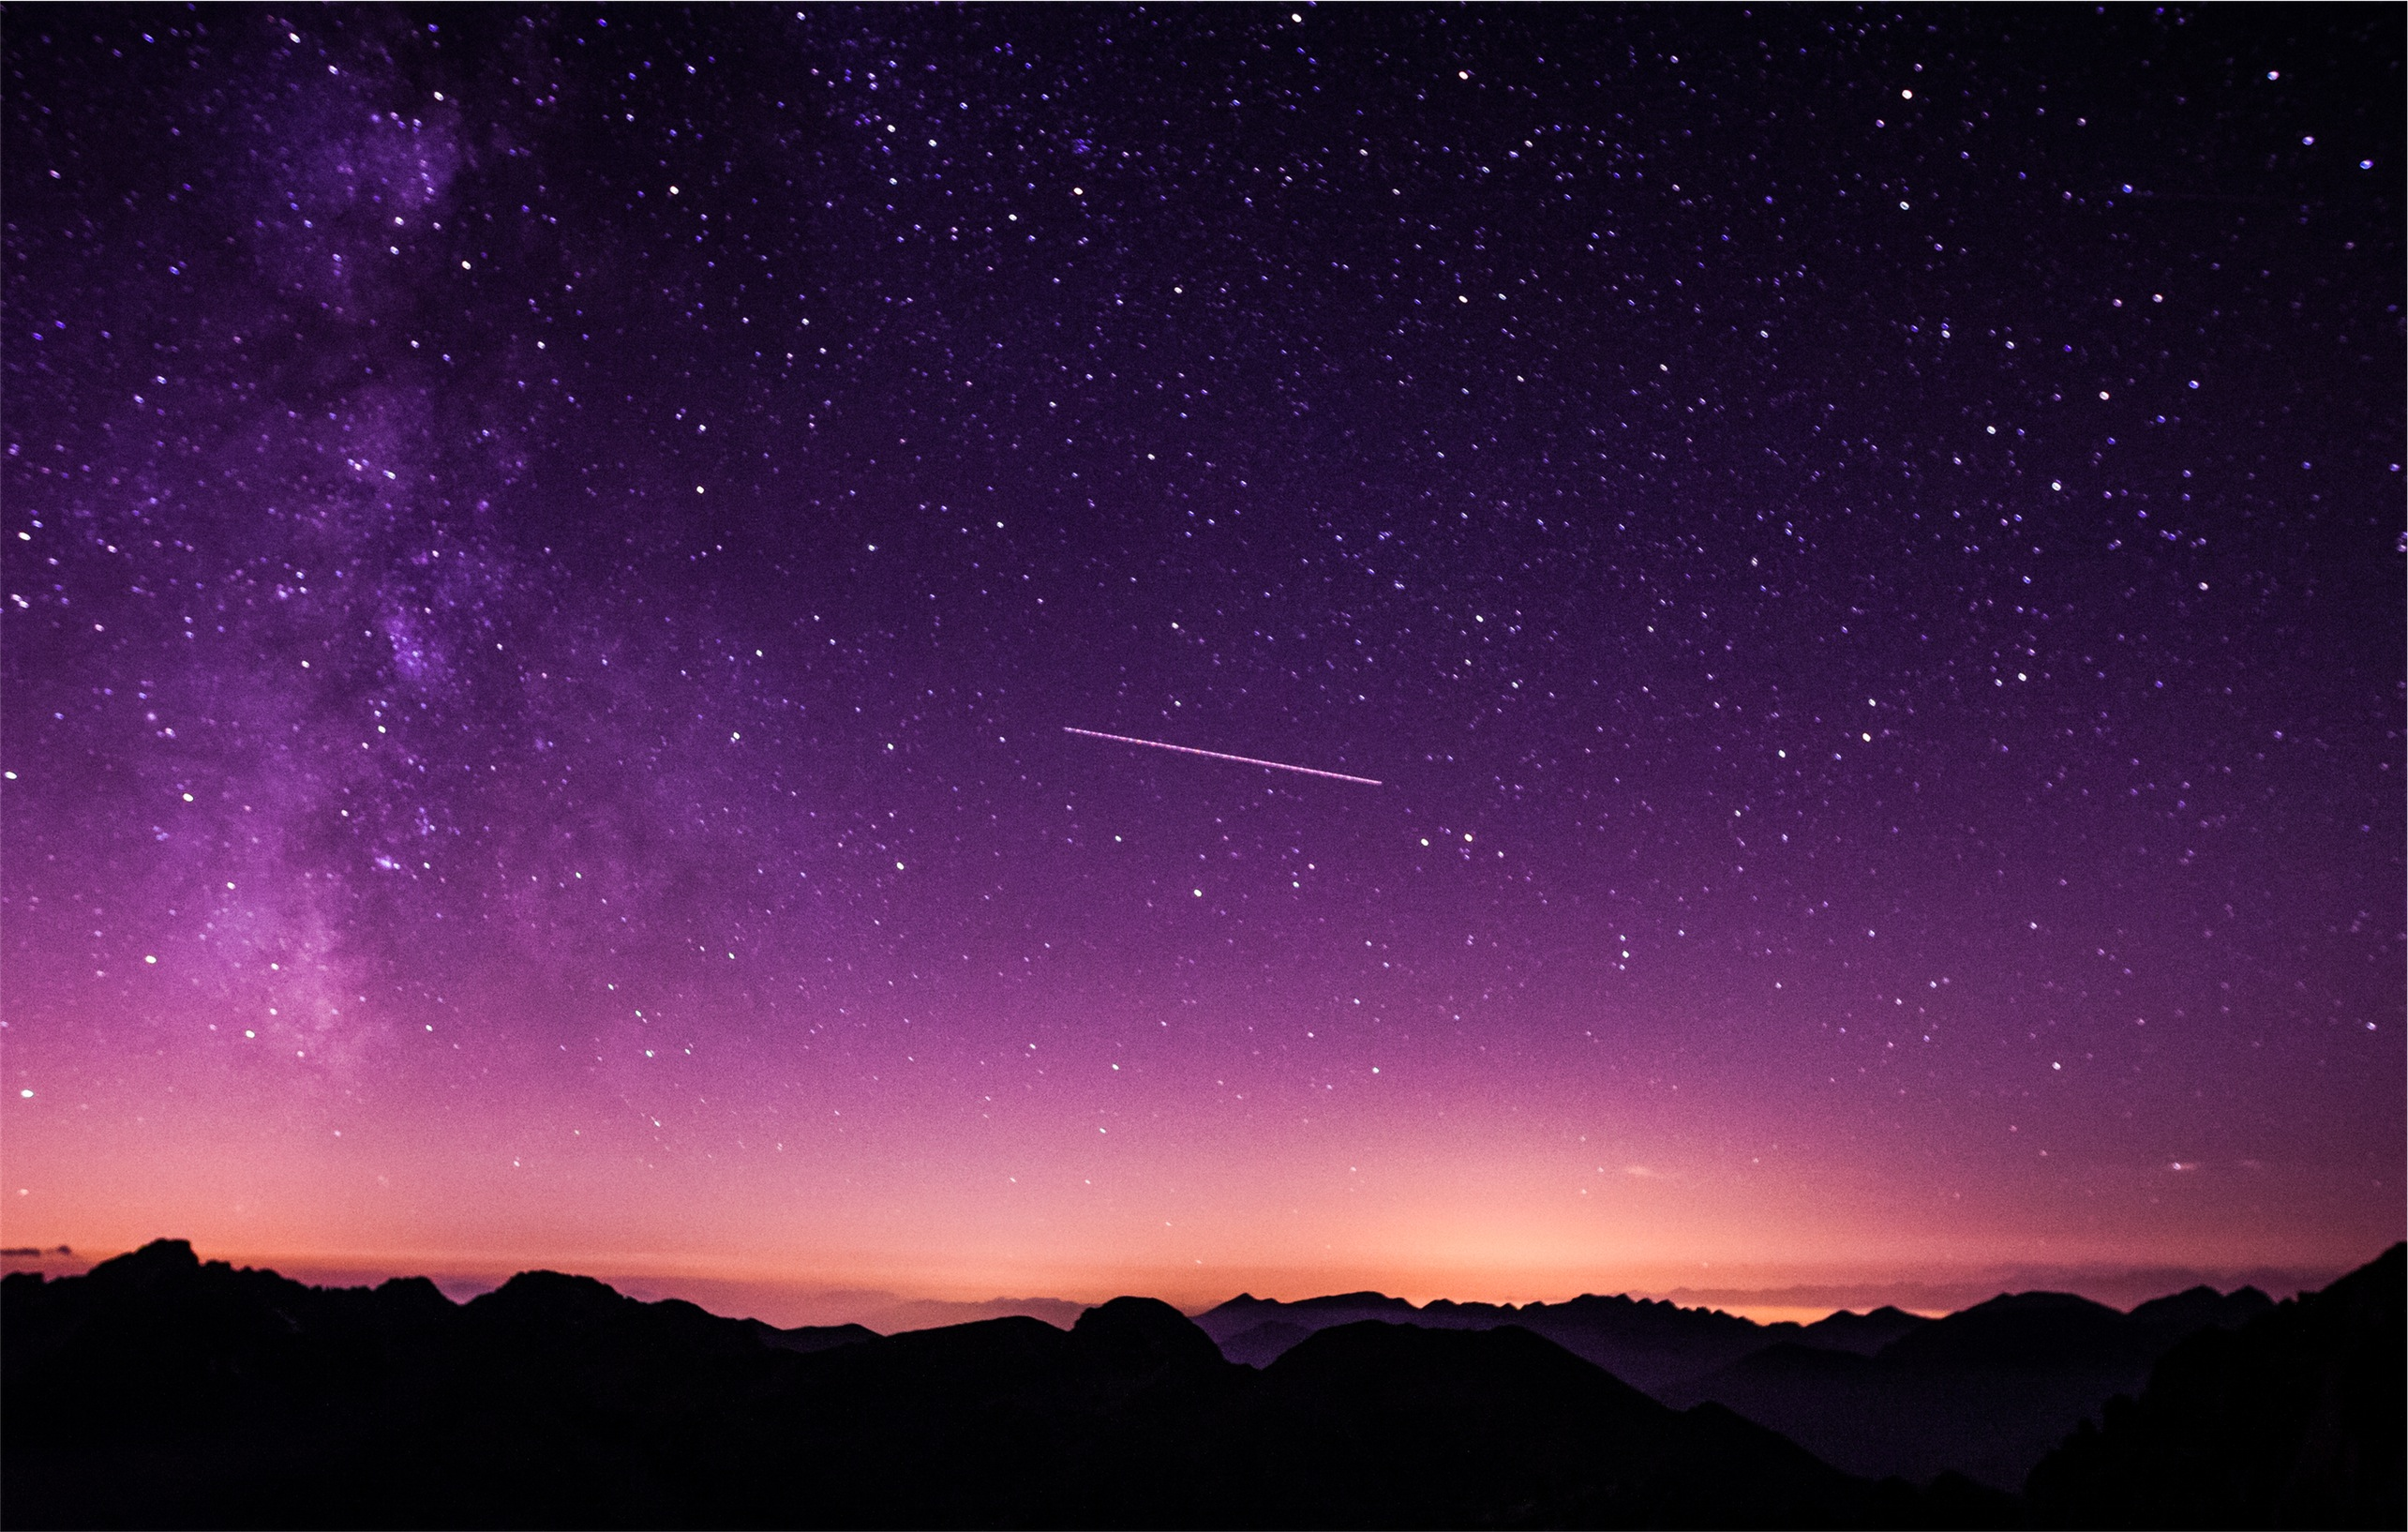 1400x900 Shooting Stars In Purple Sky 1400x900 Resolution Hd